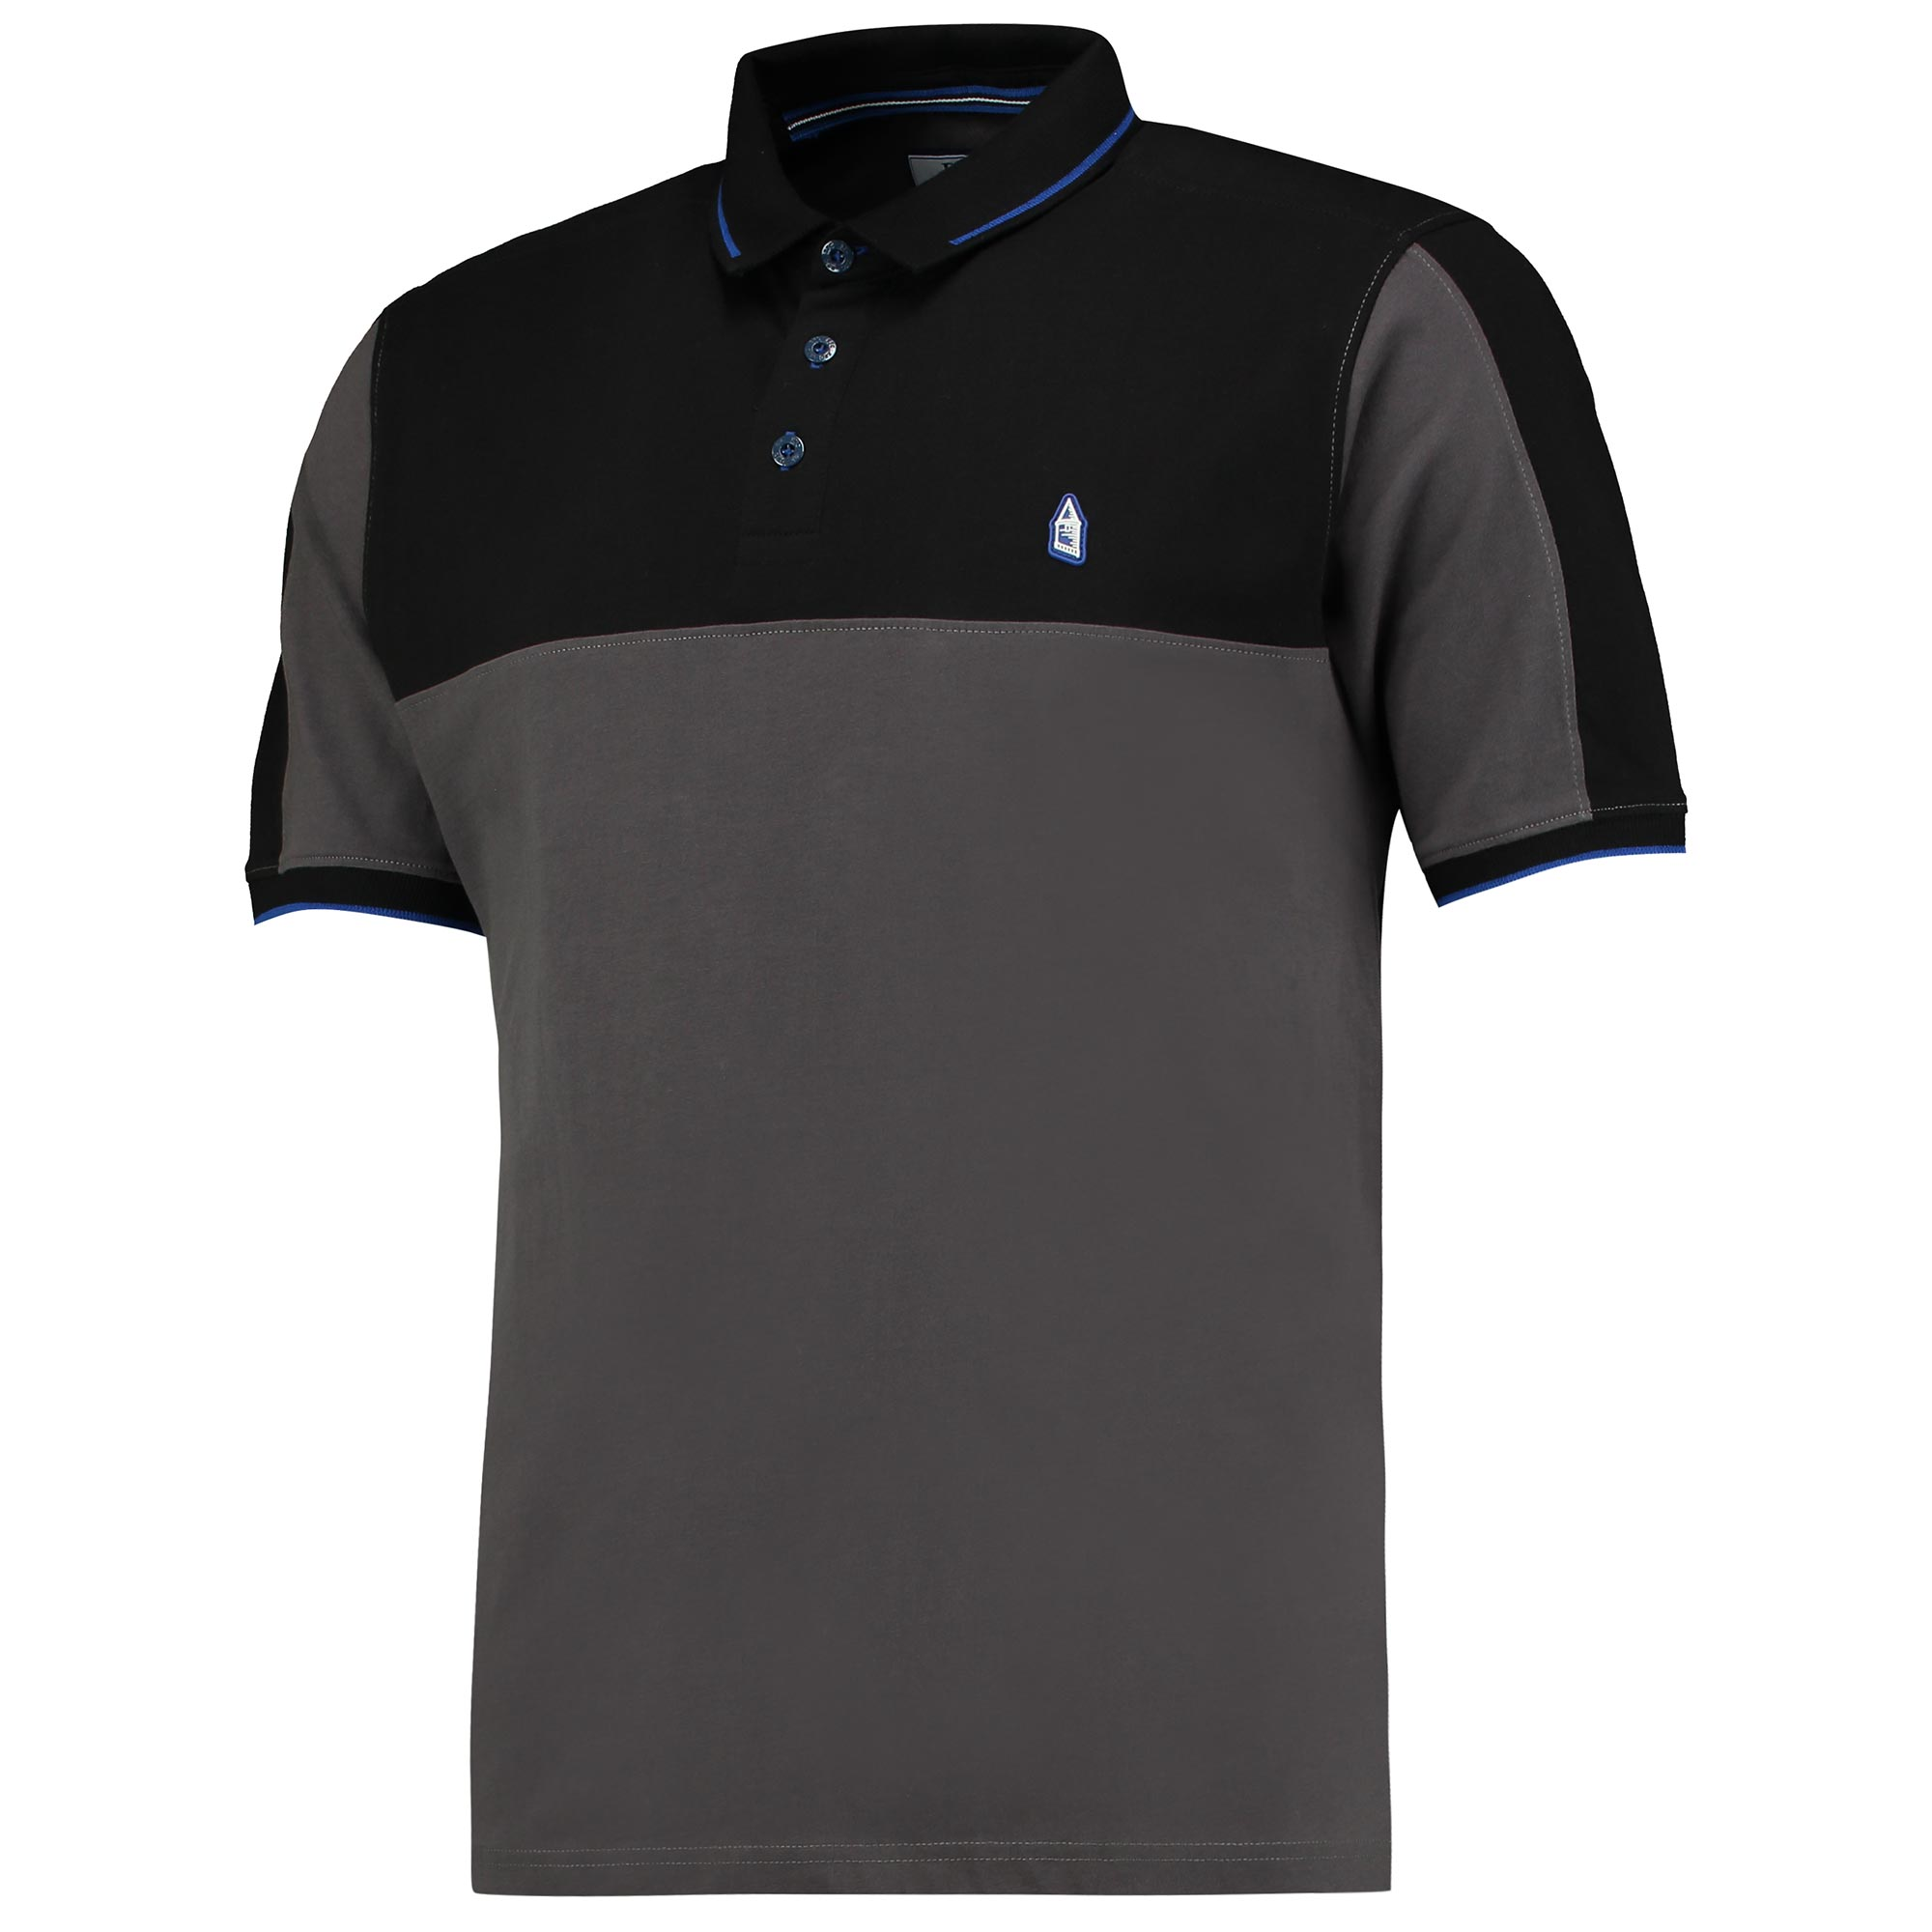 Everton Terrace Polo - Charcoal/Navy